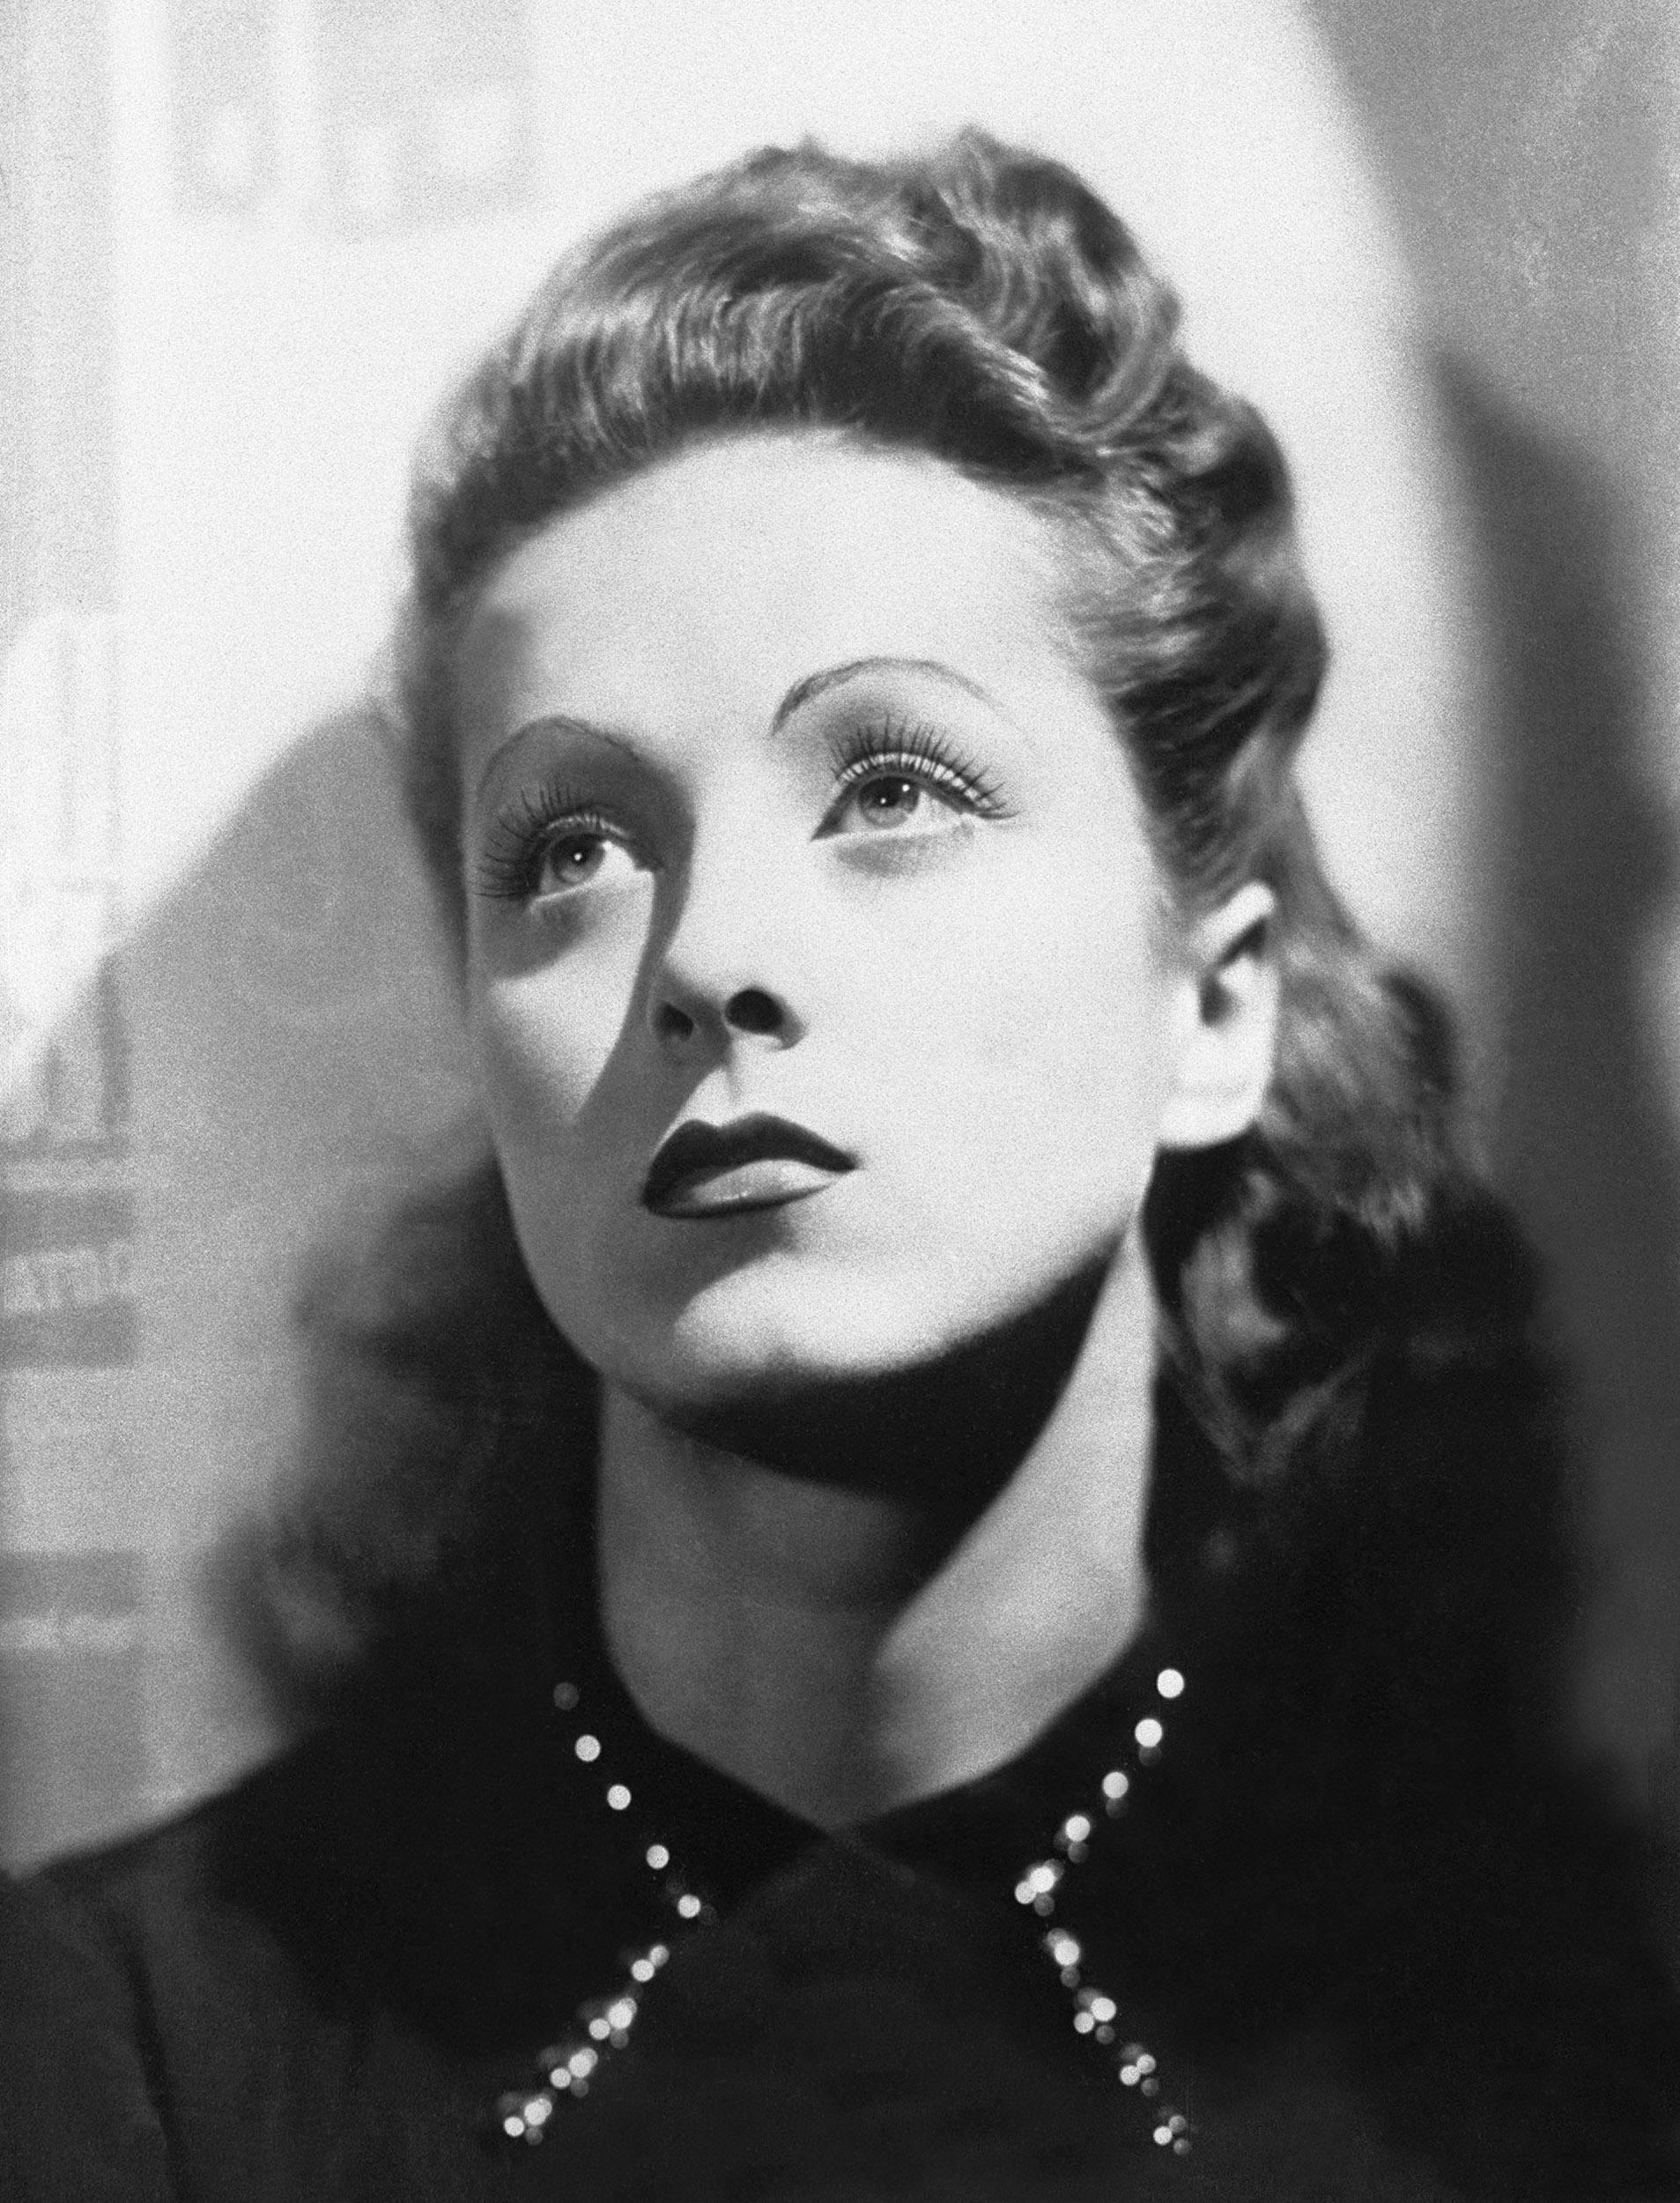 43886d65f32cd4f866dbd763088d4124 Danielle Darrieux dead at 100 – French Hollywood actress and 'Nazi collaborator' who found fame in string of films dies after a fall at home